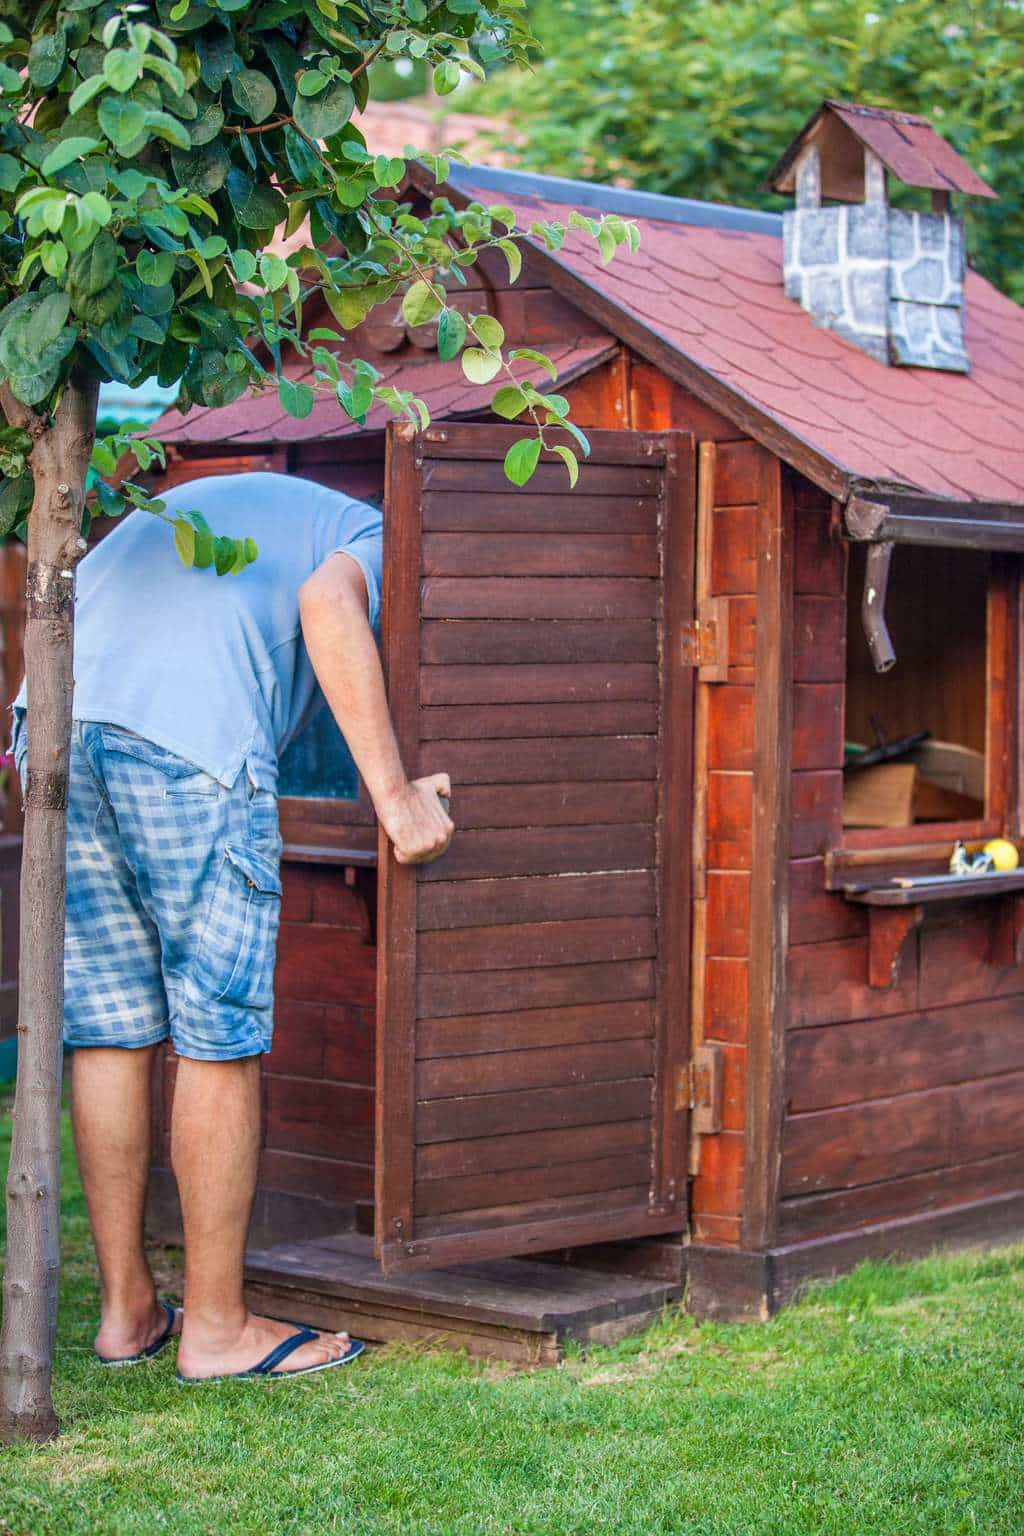 Man looking into playhouse